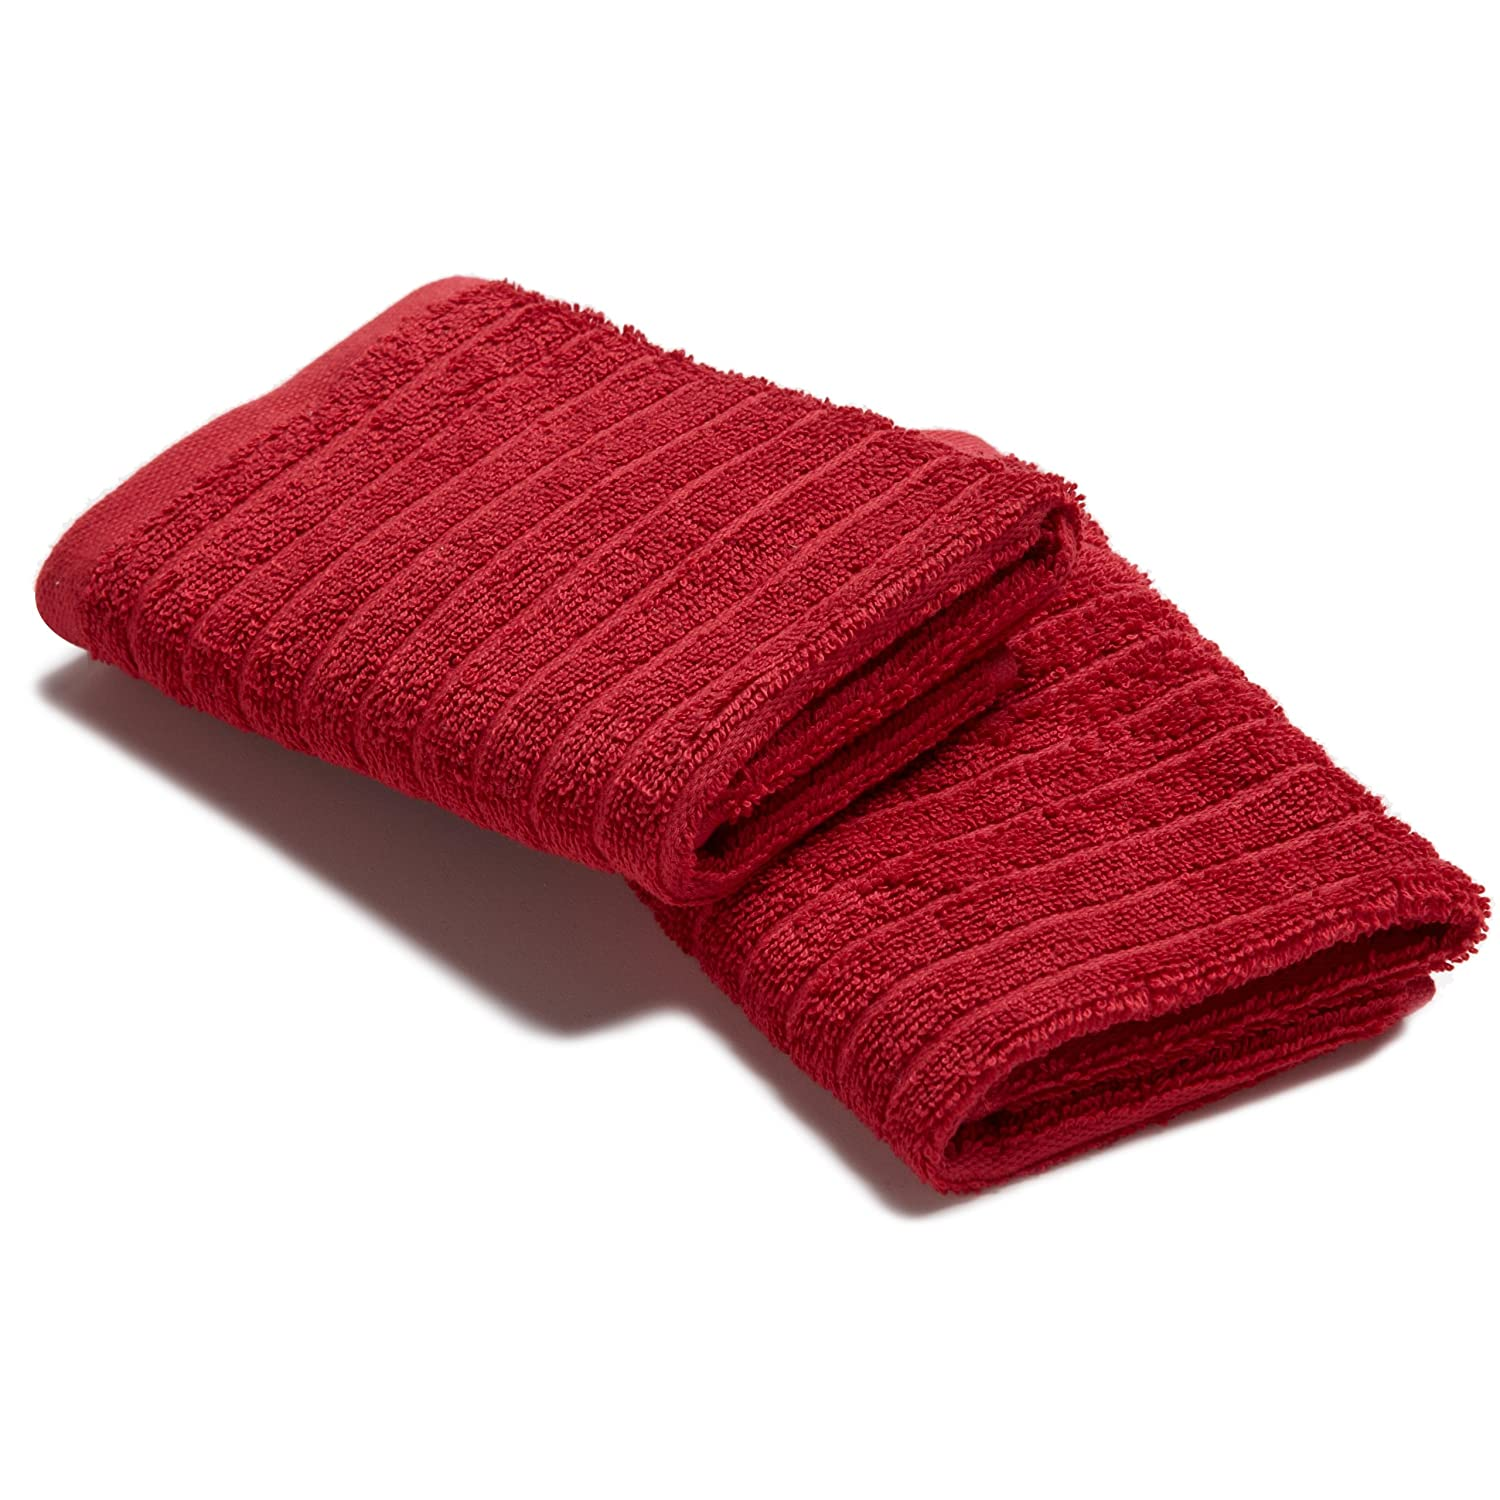 Image: Danica Studio Aegean Wash Cloth, 12 by 12-Inch, Chili Red, Set of 2 - Made in turkey of 100-percent turkish long strand cotton